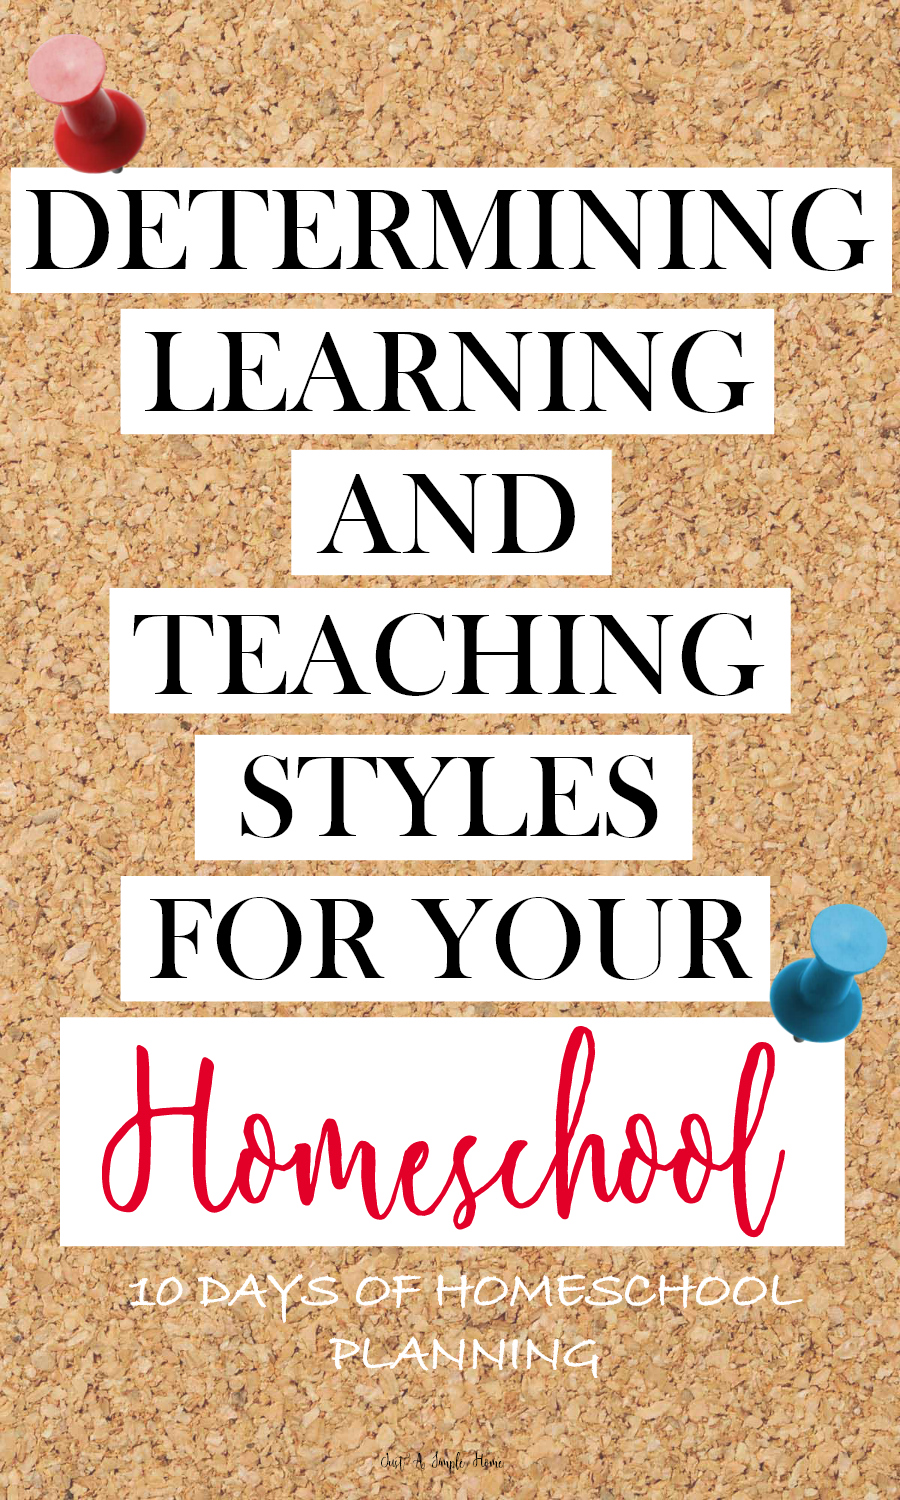 Determine Learning and Teaching Styles in your Homeschool - 10 Days of Homeschool Planning